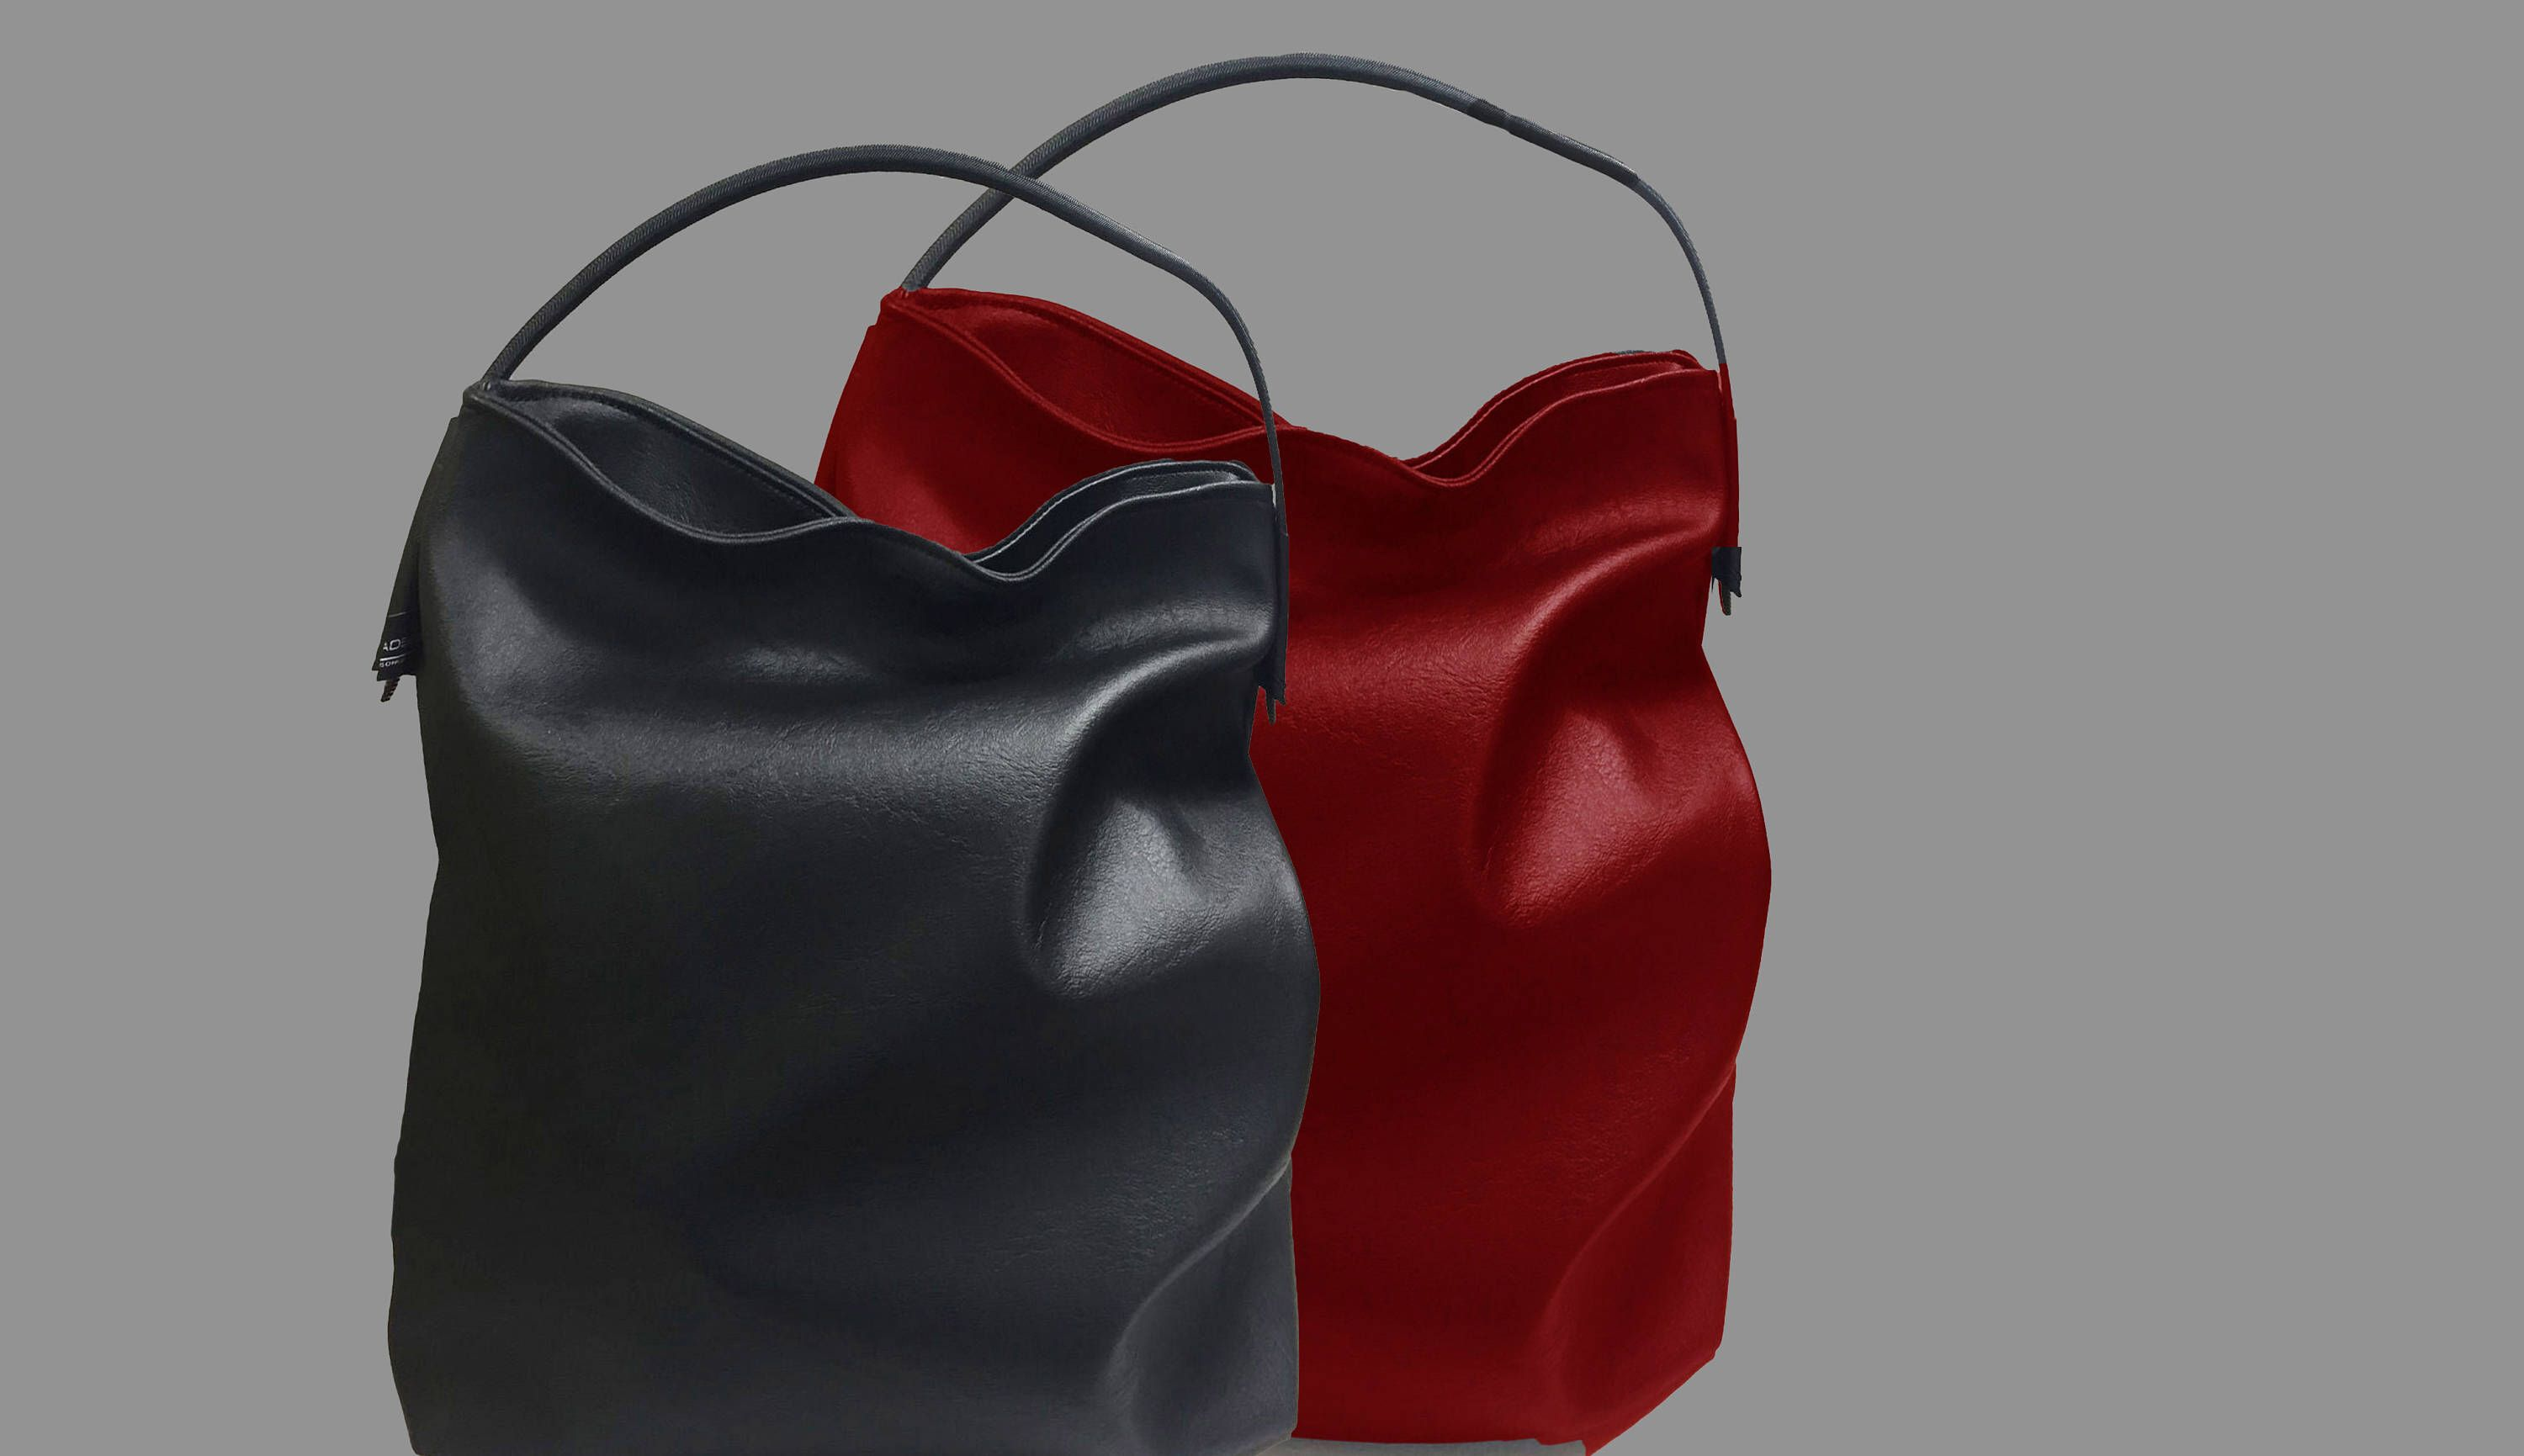 Hobo Handbag Made Of Synthetic Leather With Carrying Handle Also For